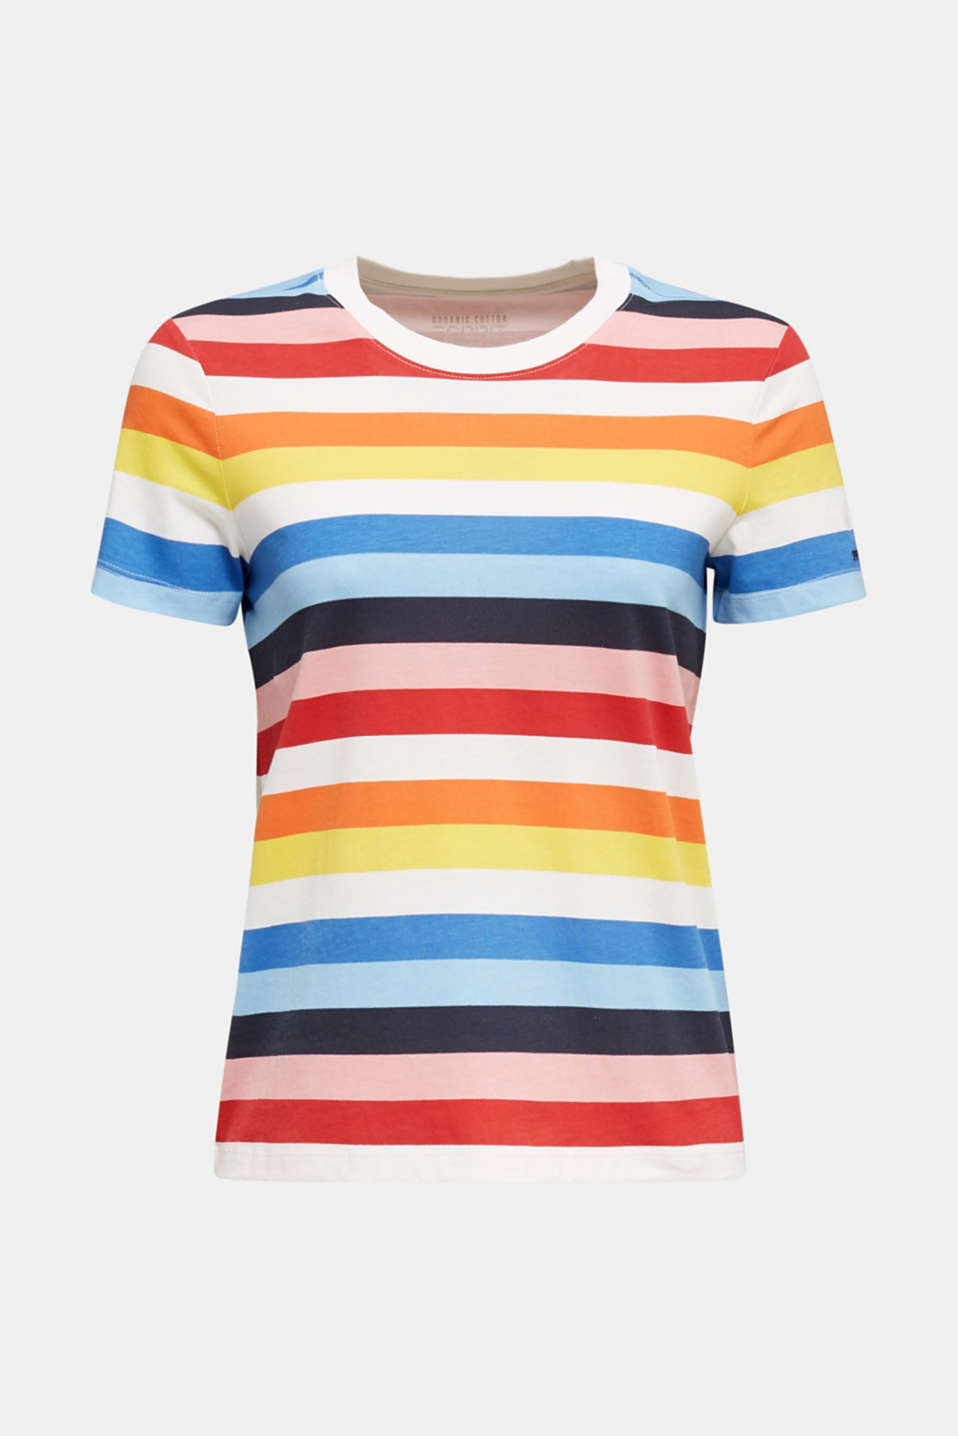 T-shirt with multi-coloured stripes, 100% cotton, BRIGHT BLUE 2, detail image number 5